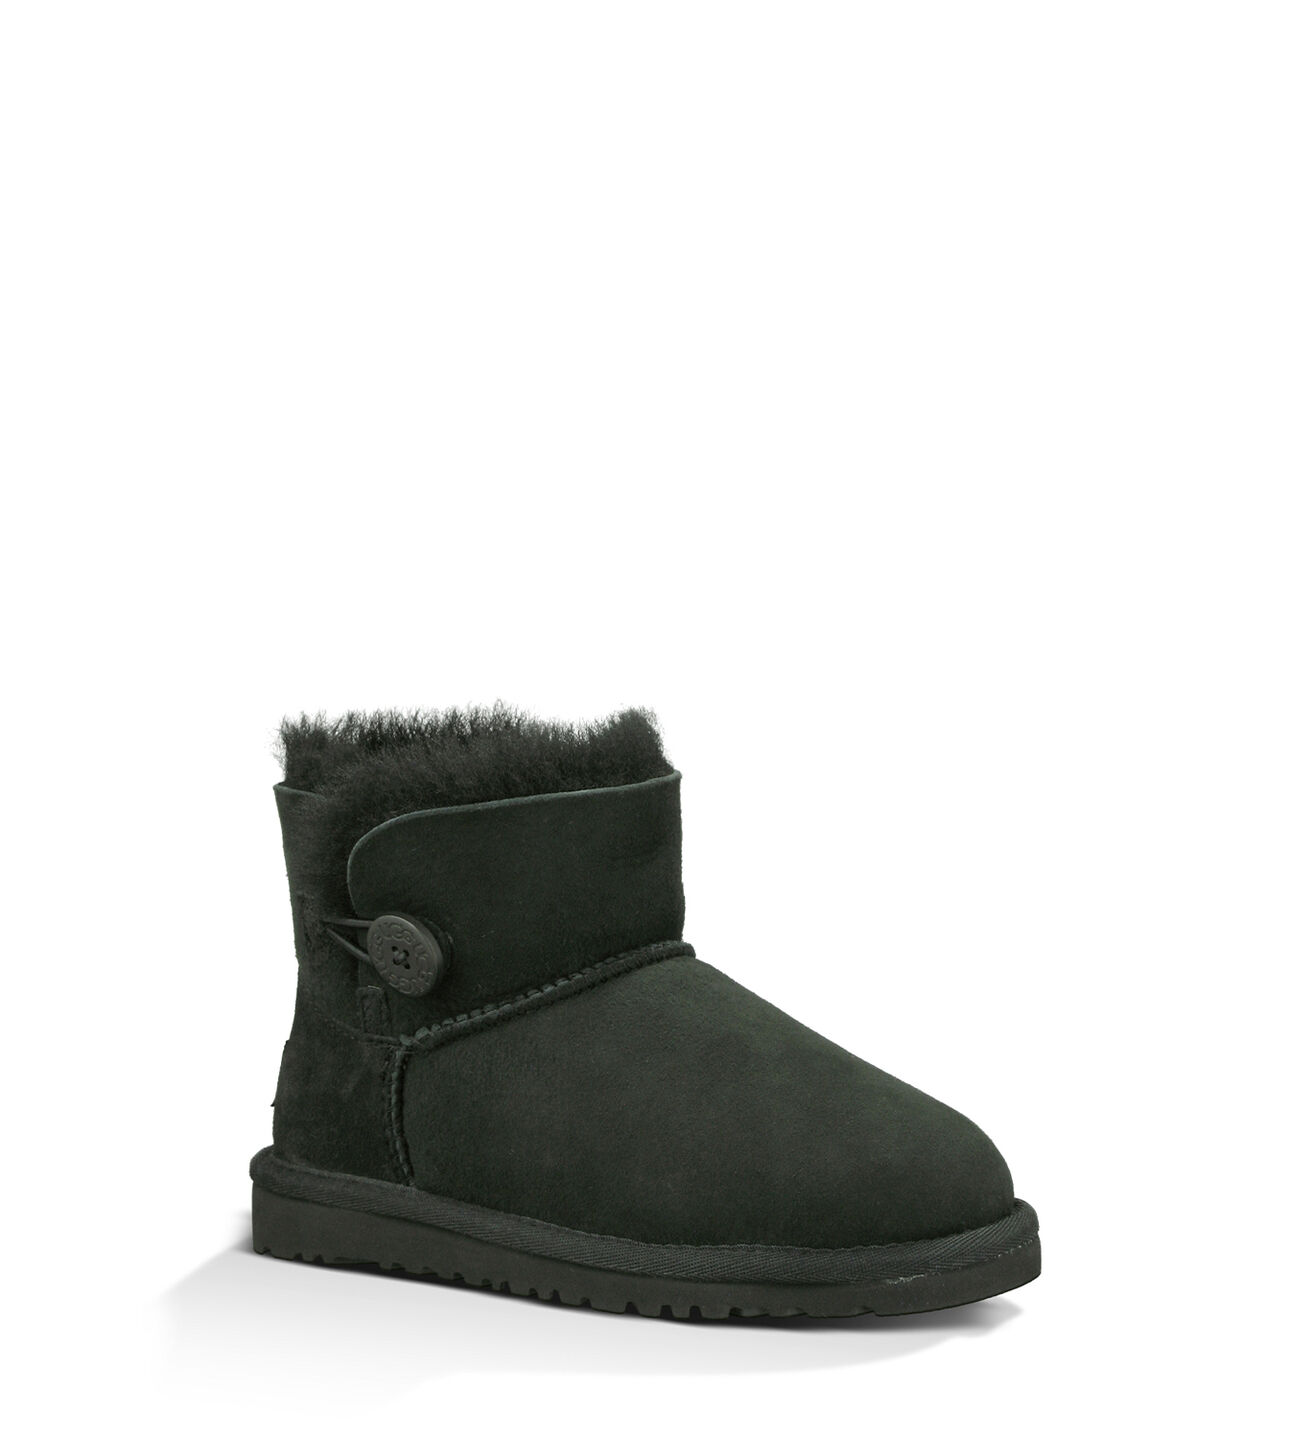 price of uggs in america